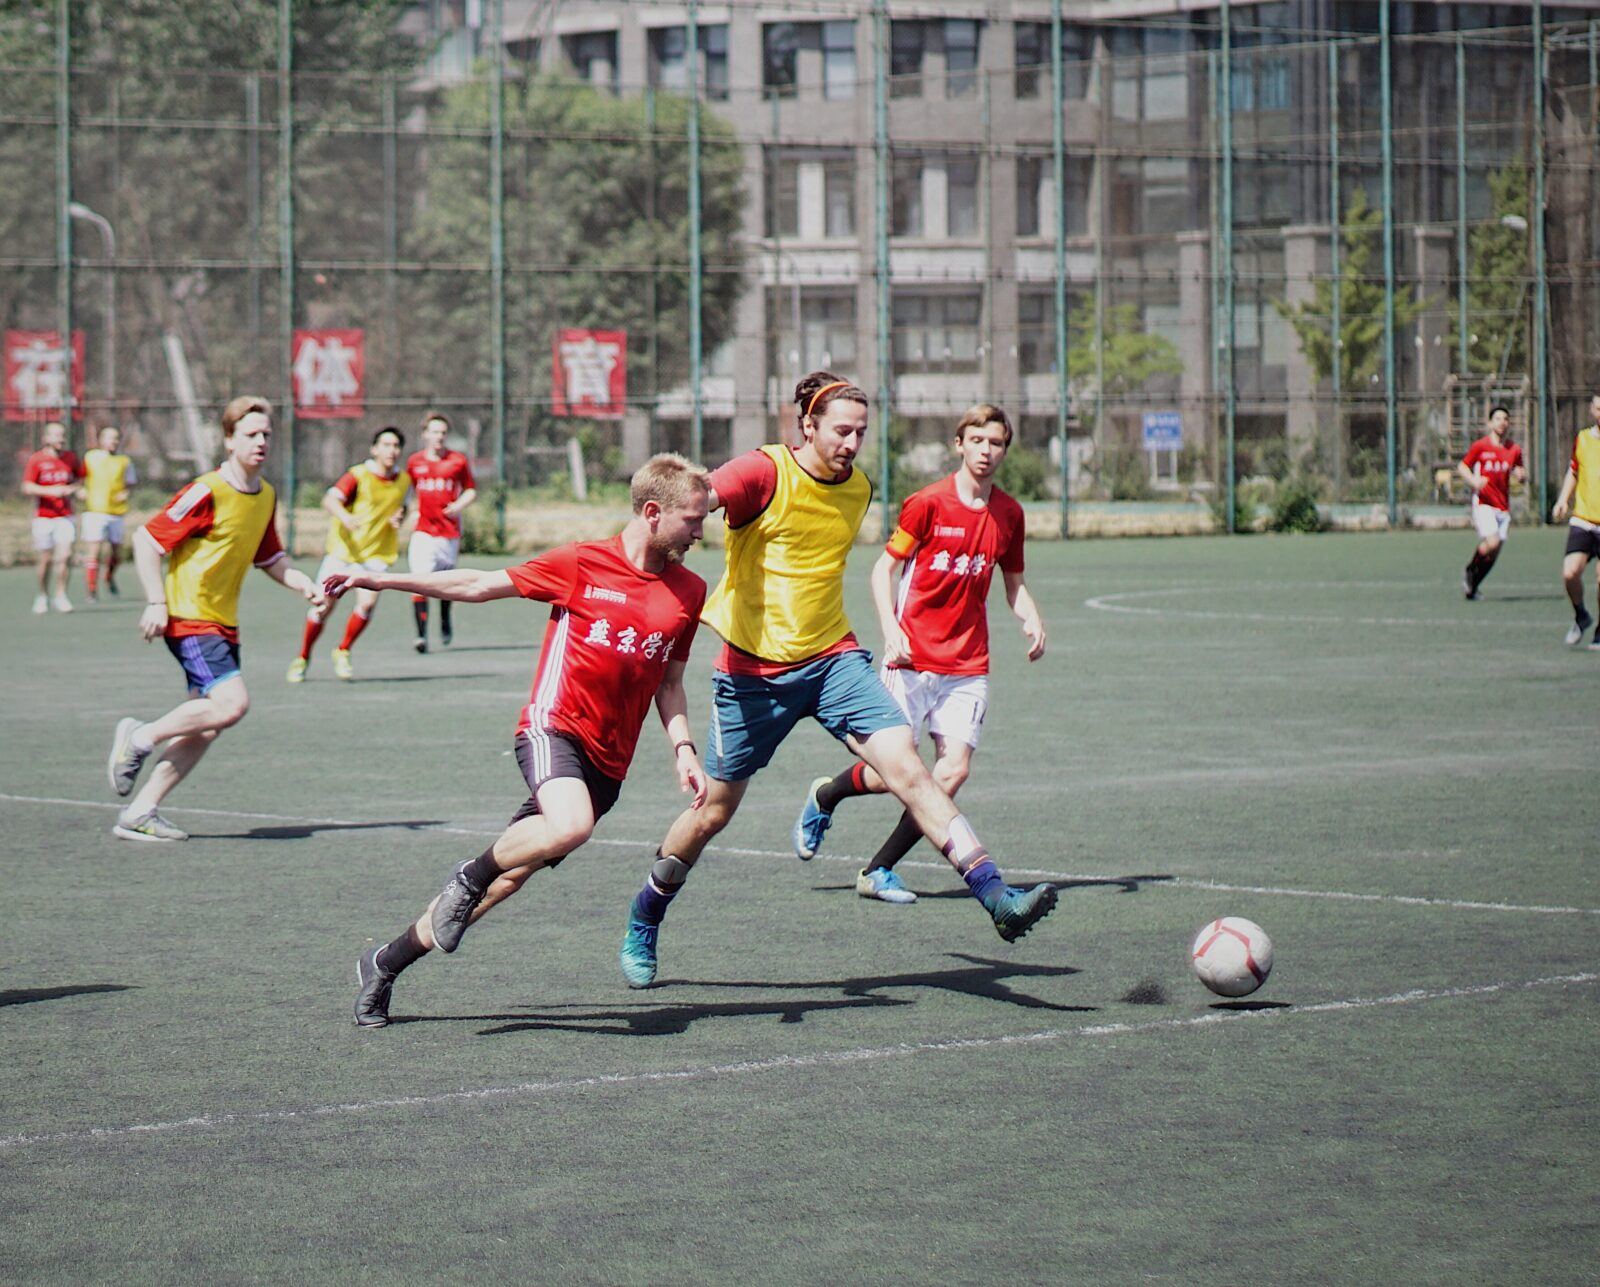 People playing football